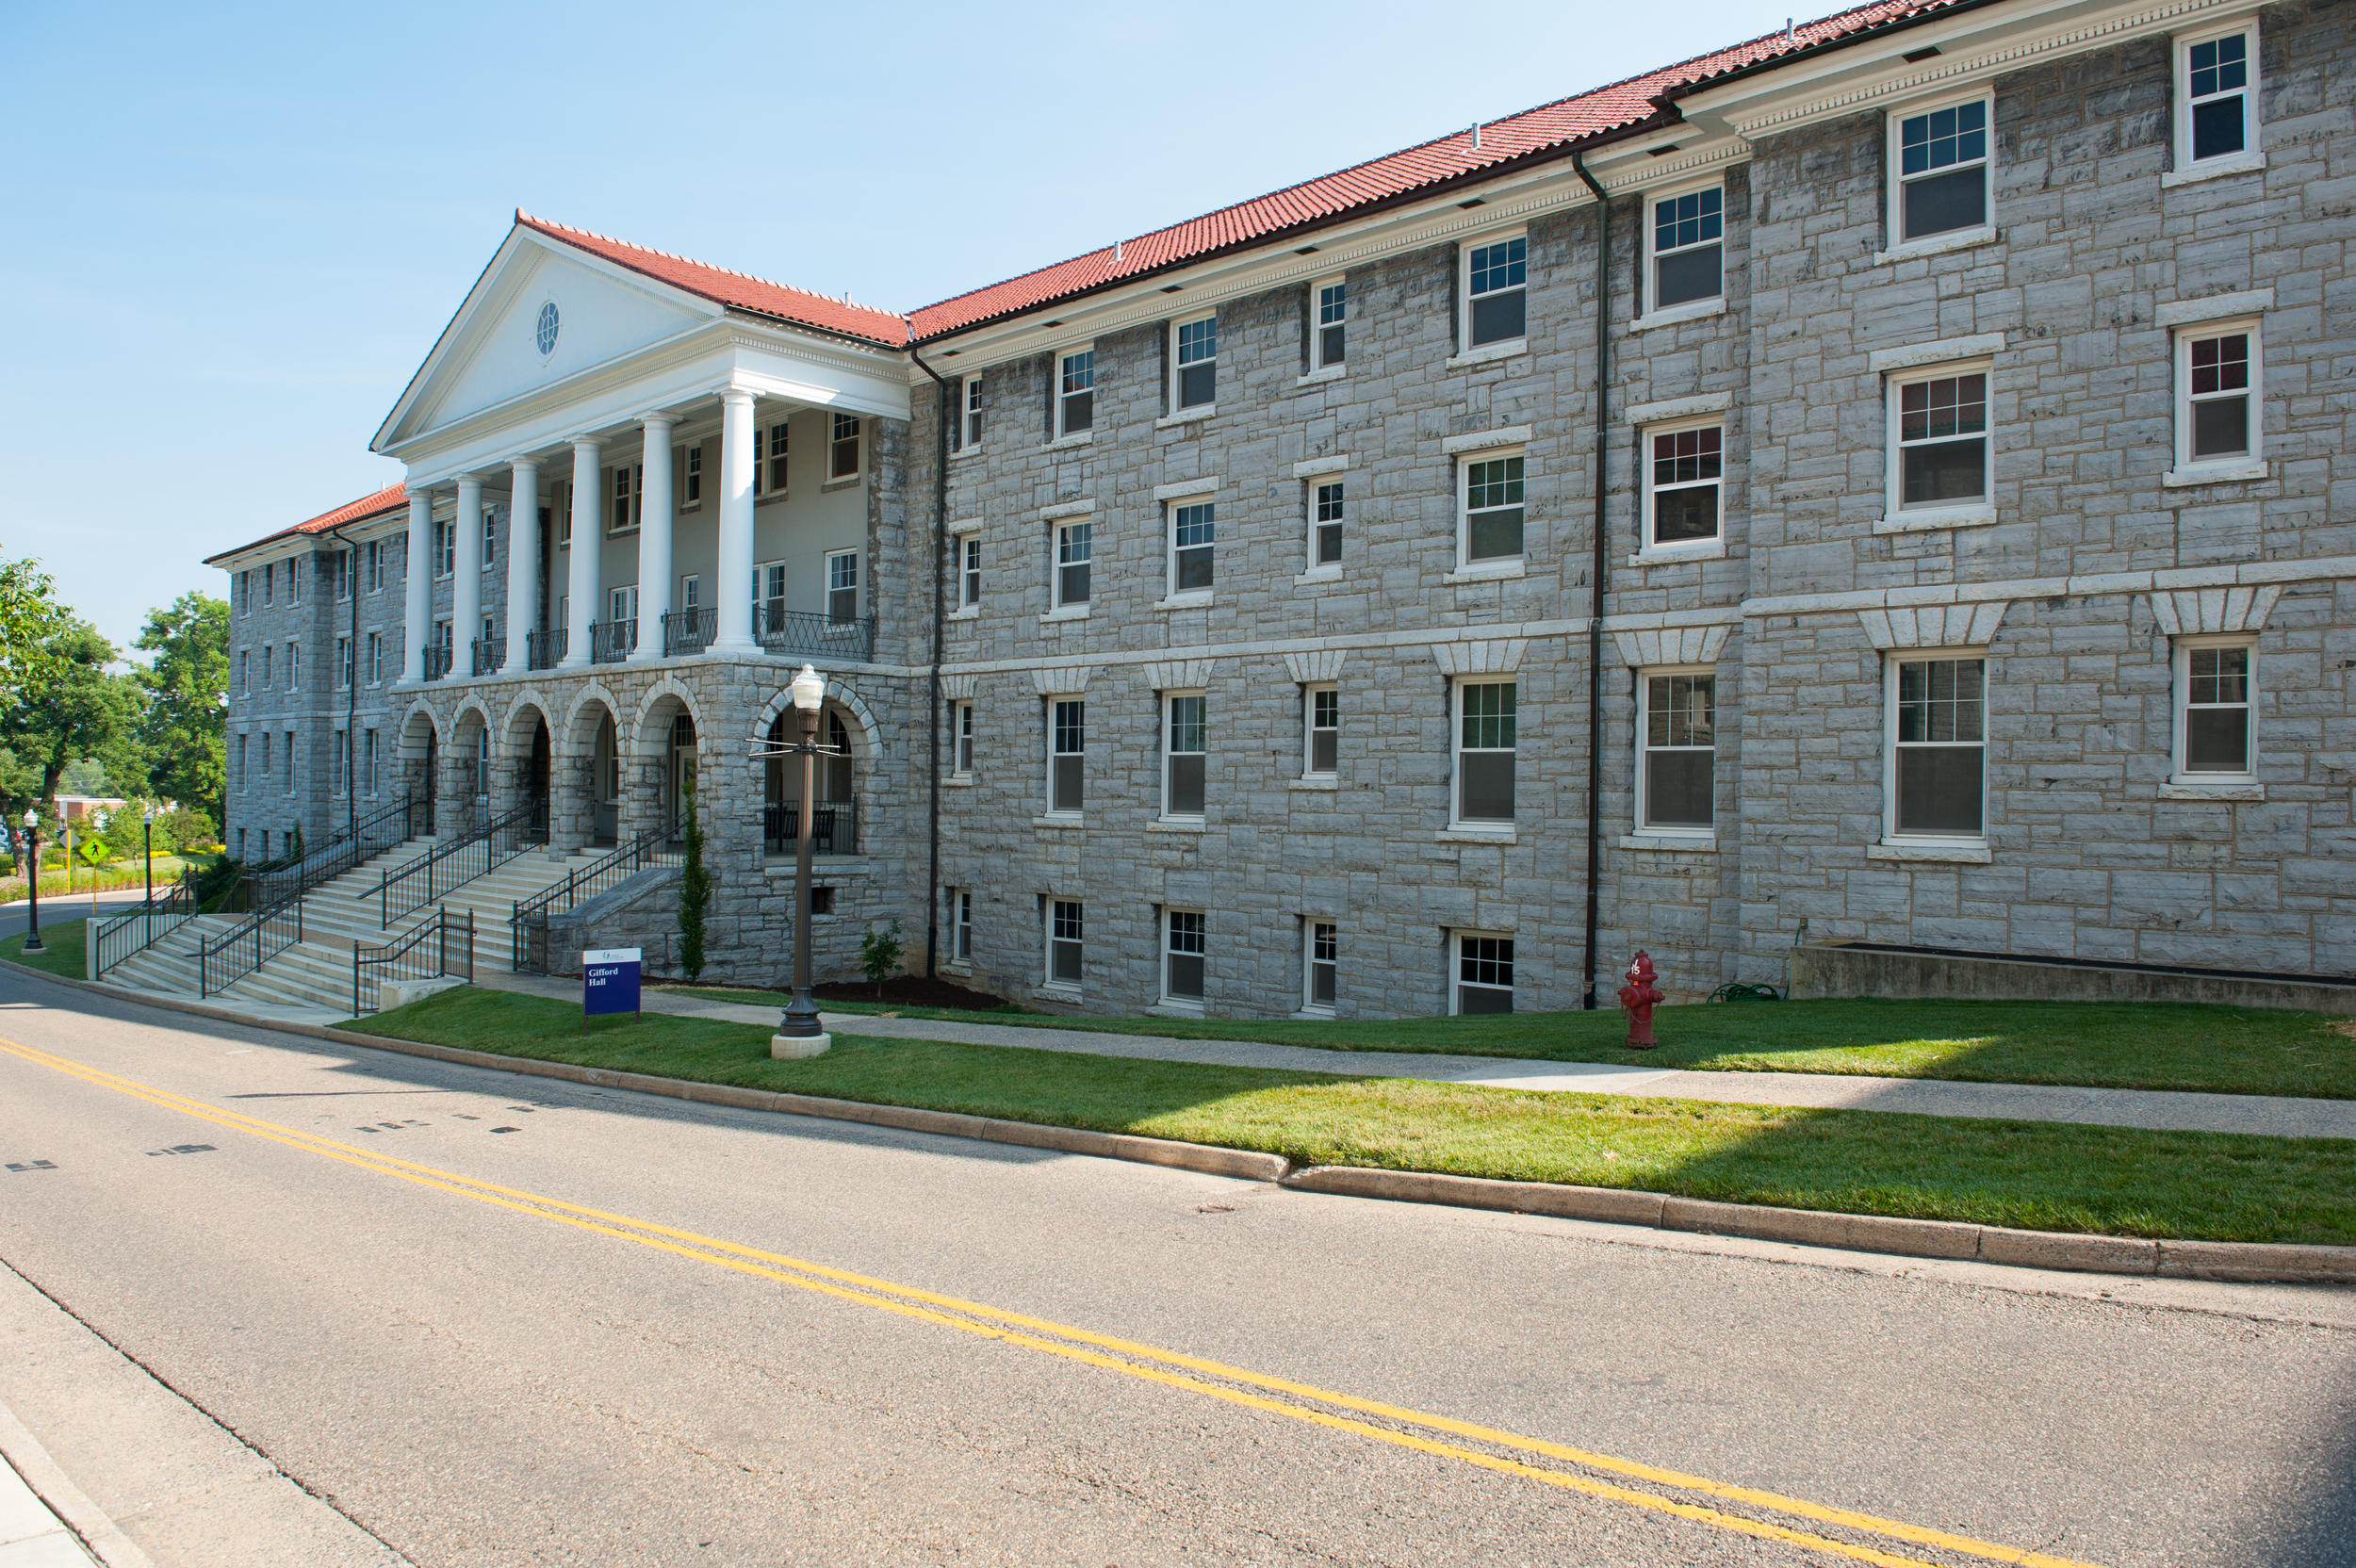 231644 Stock Images of Campus Buildings-1454.jpg